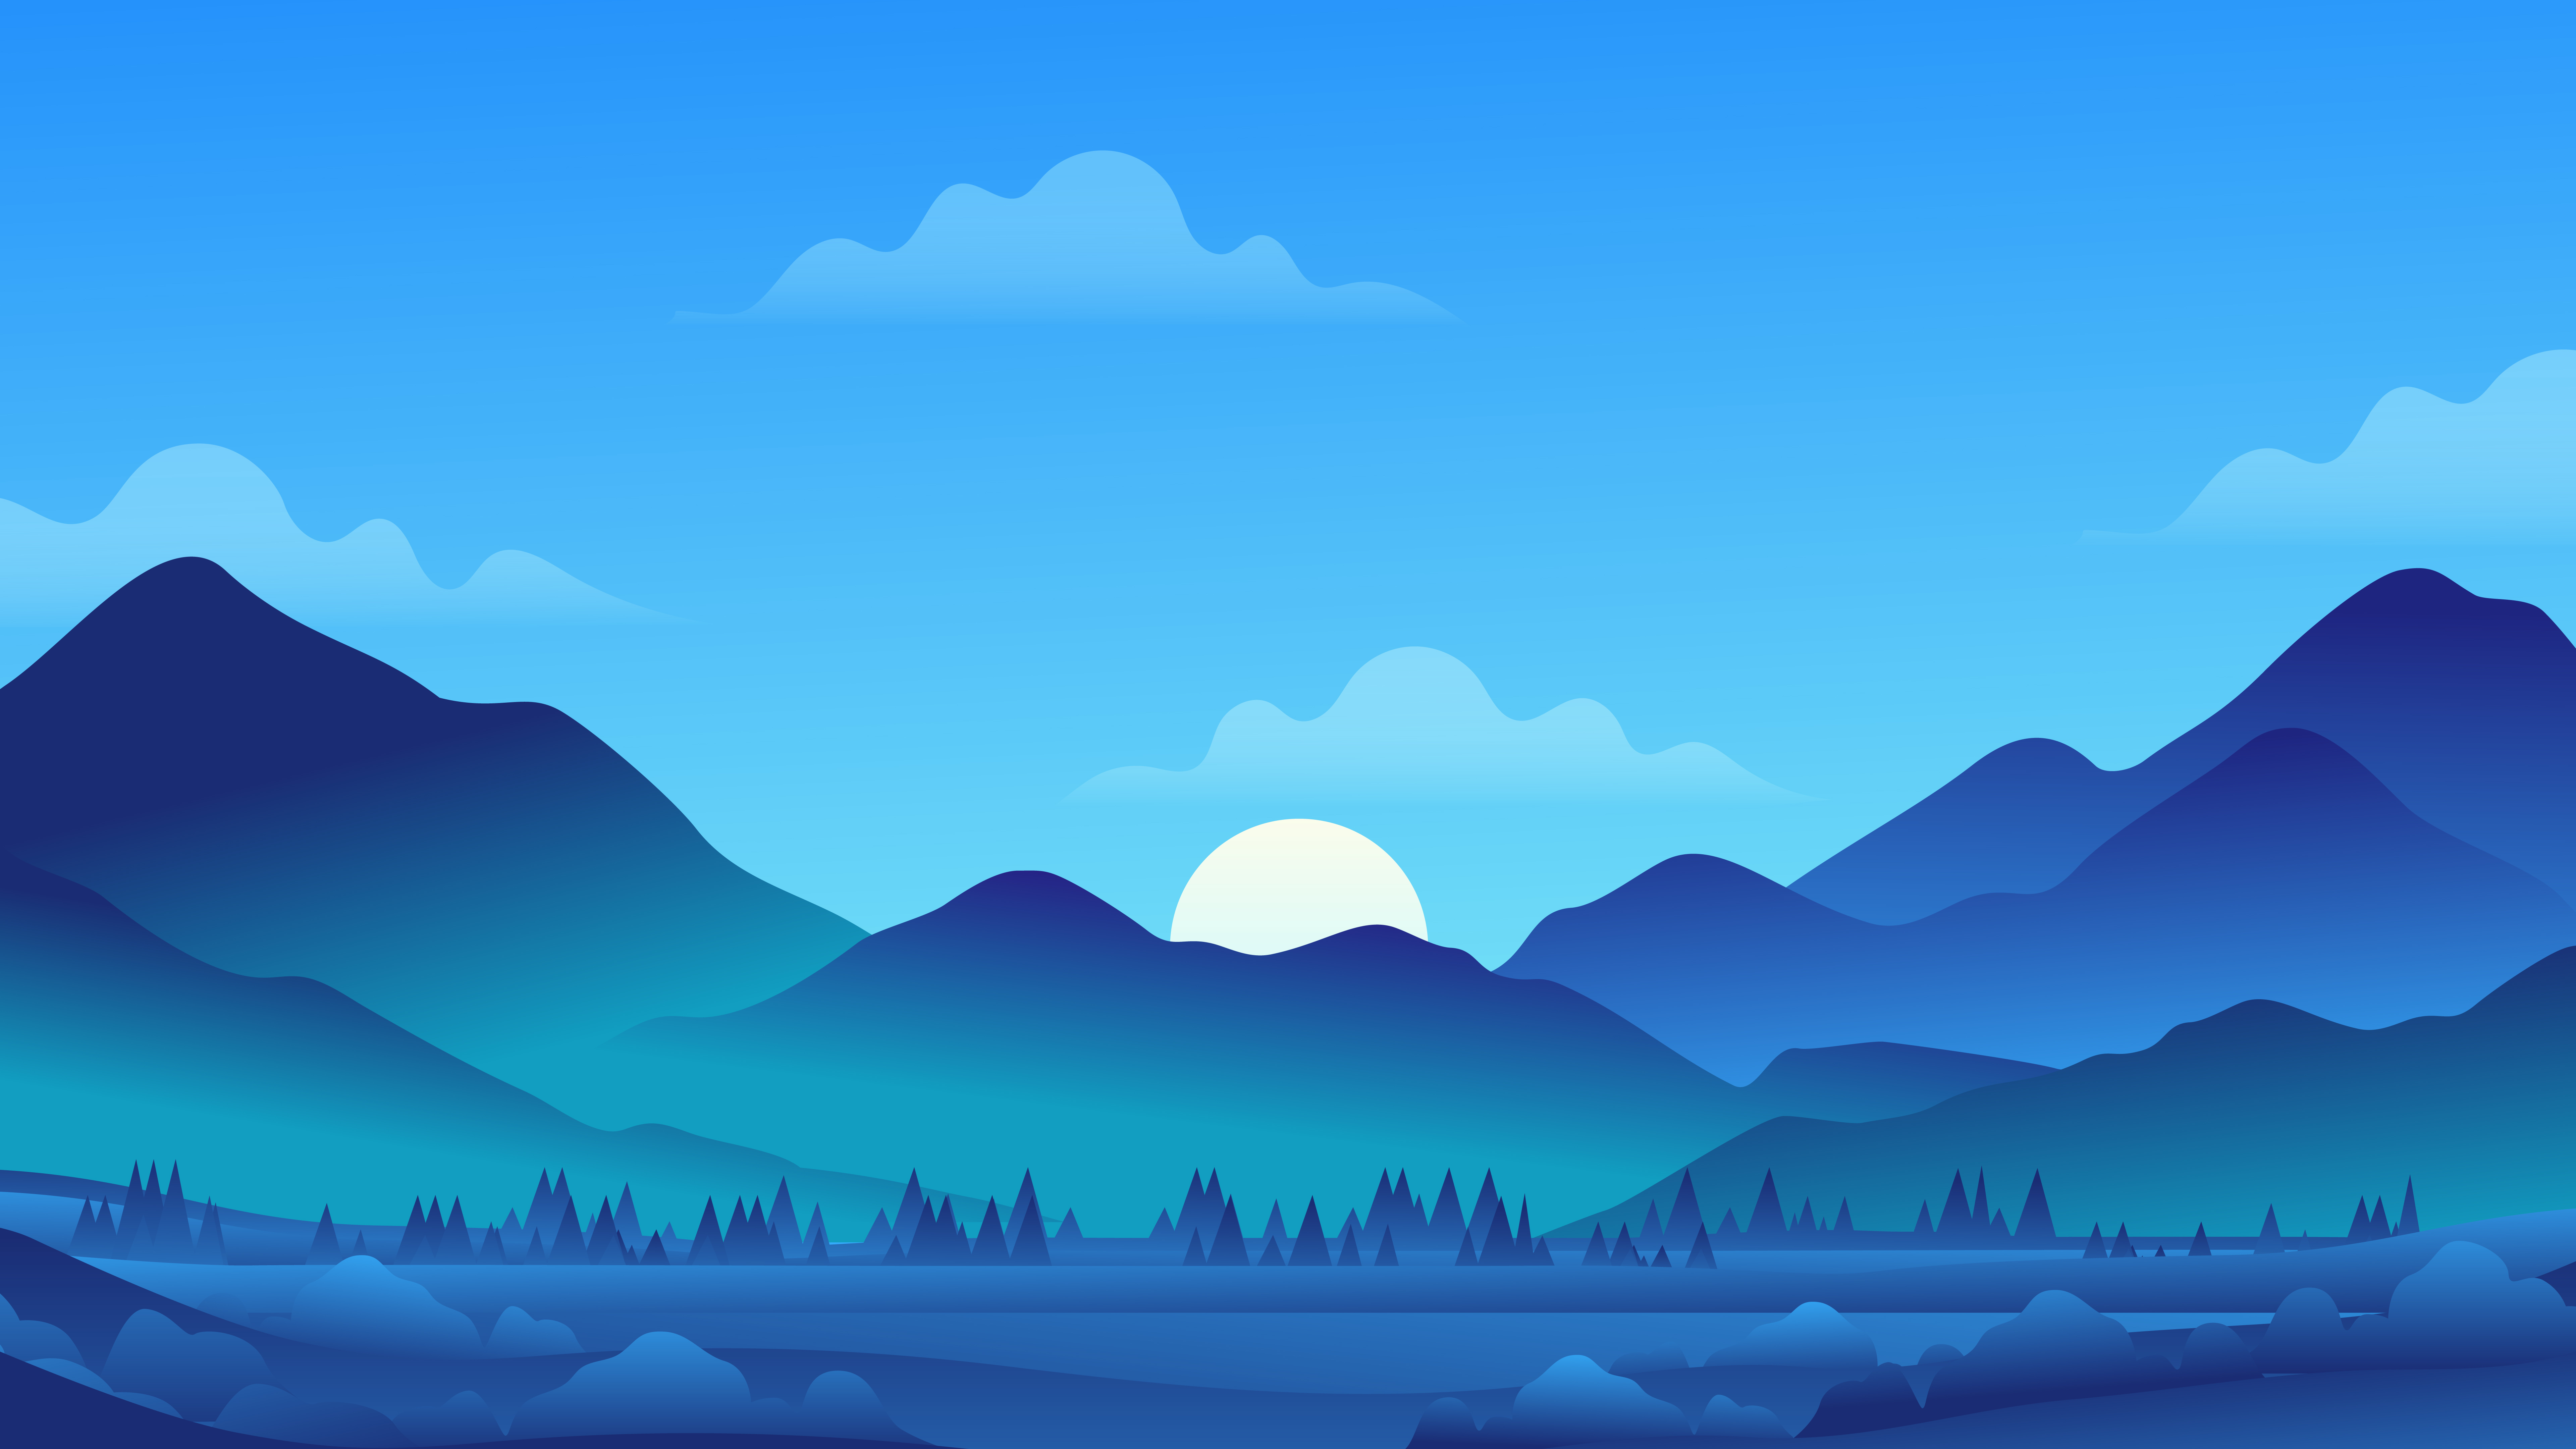 7680x4320 Minimal Morning Landscape 8k 8k Hd 4k Wallpapers Images Backgrounds Photos And Pictures